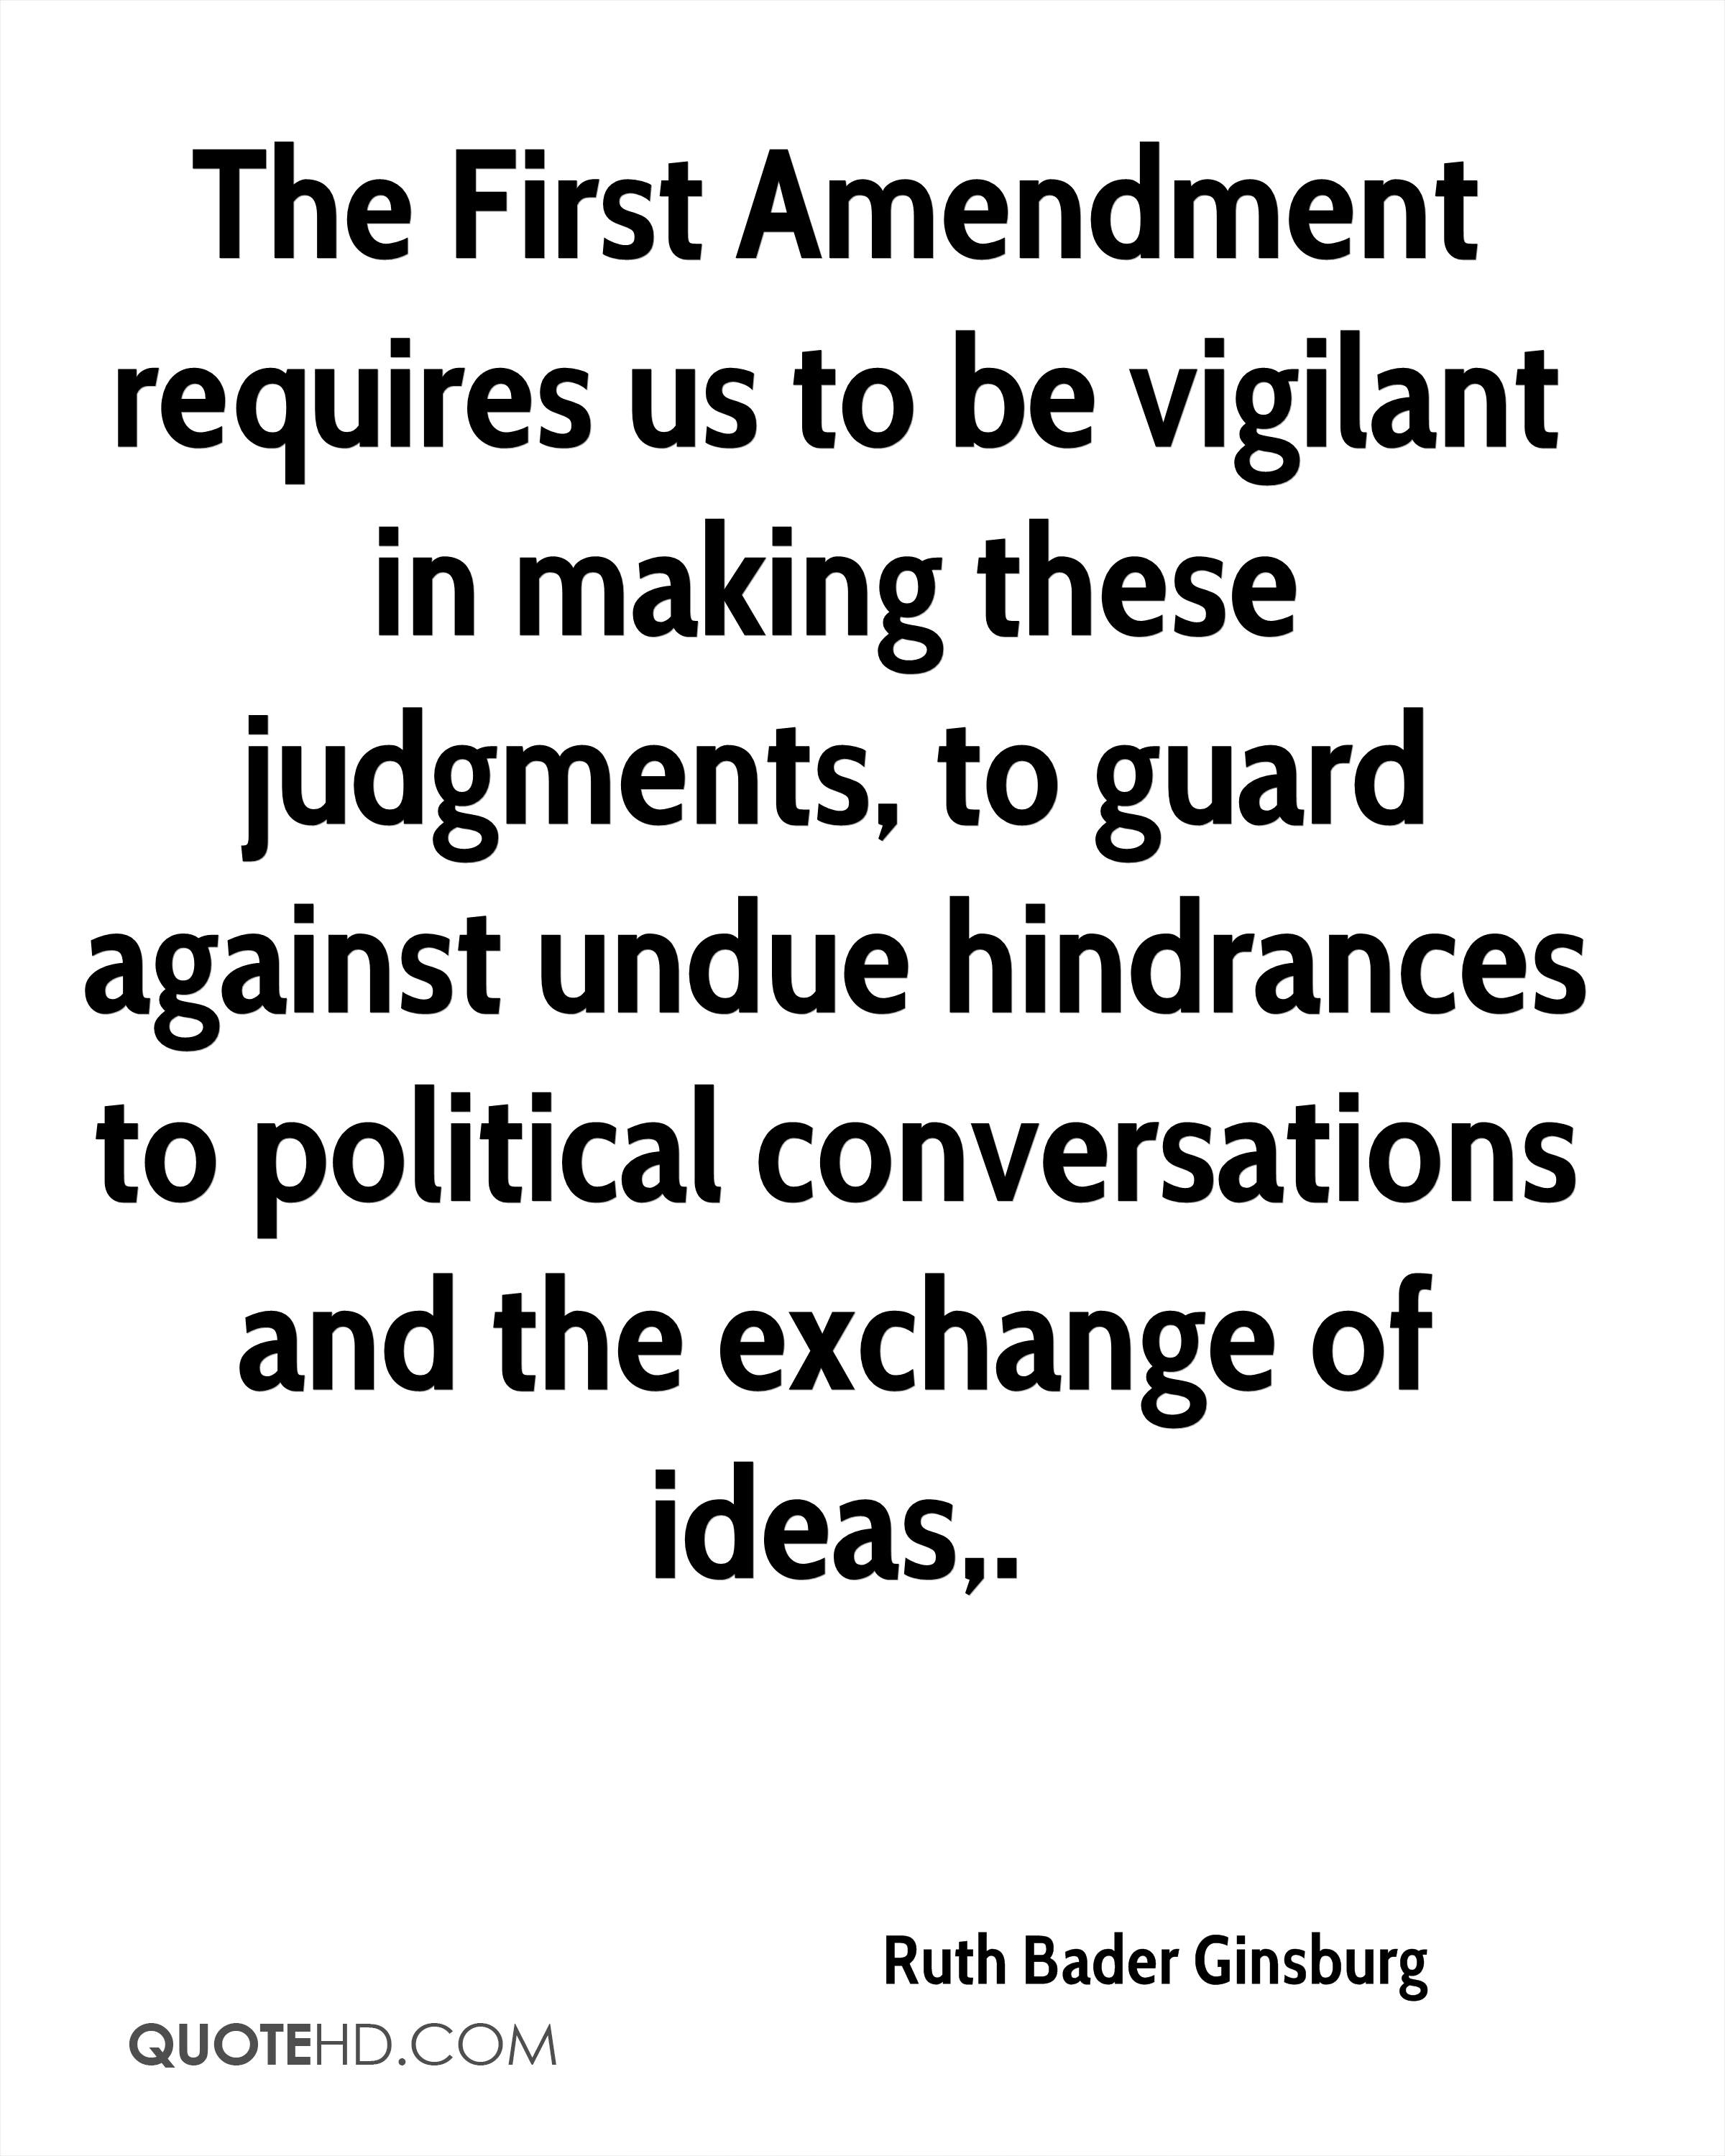 The First Amendment requires us to be vigilant in making these judgments, to guard against undue hindrances to political conversations and the exchange of ideas.